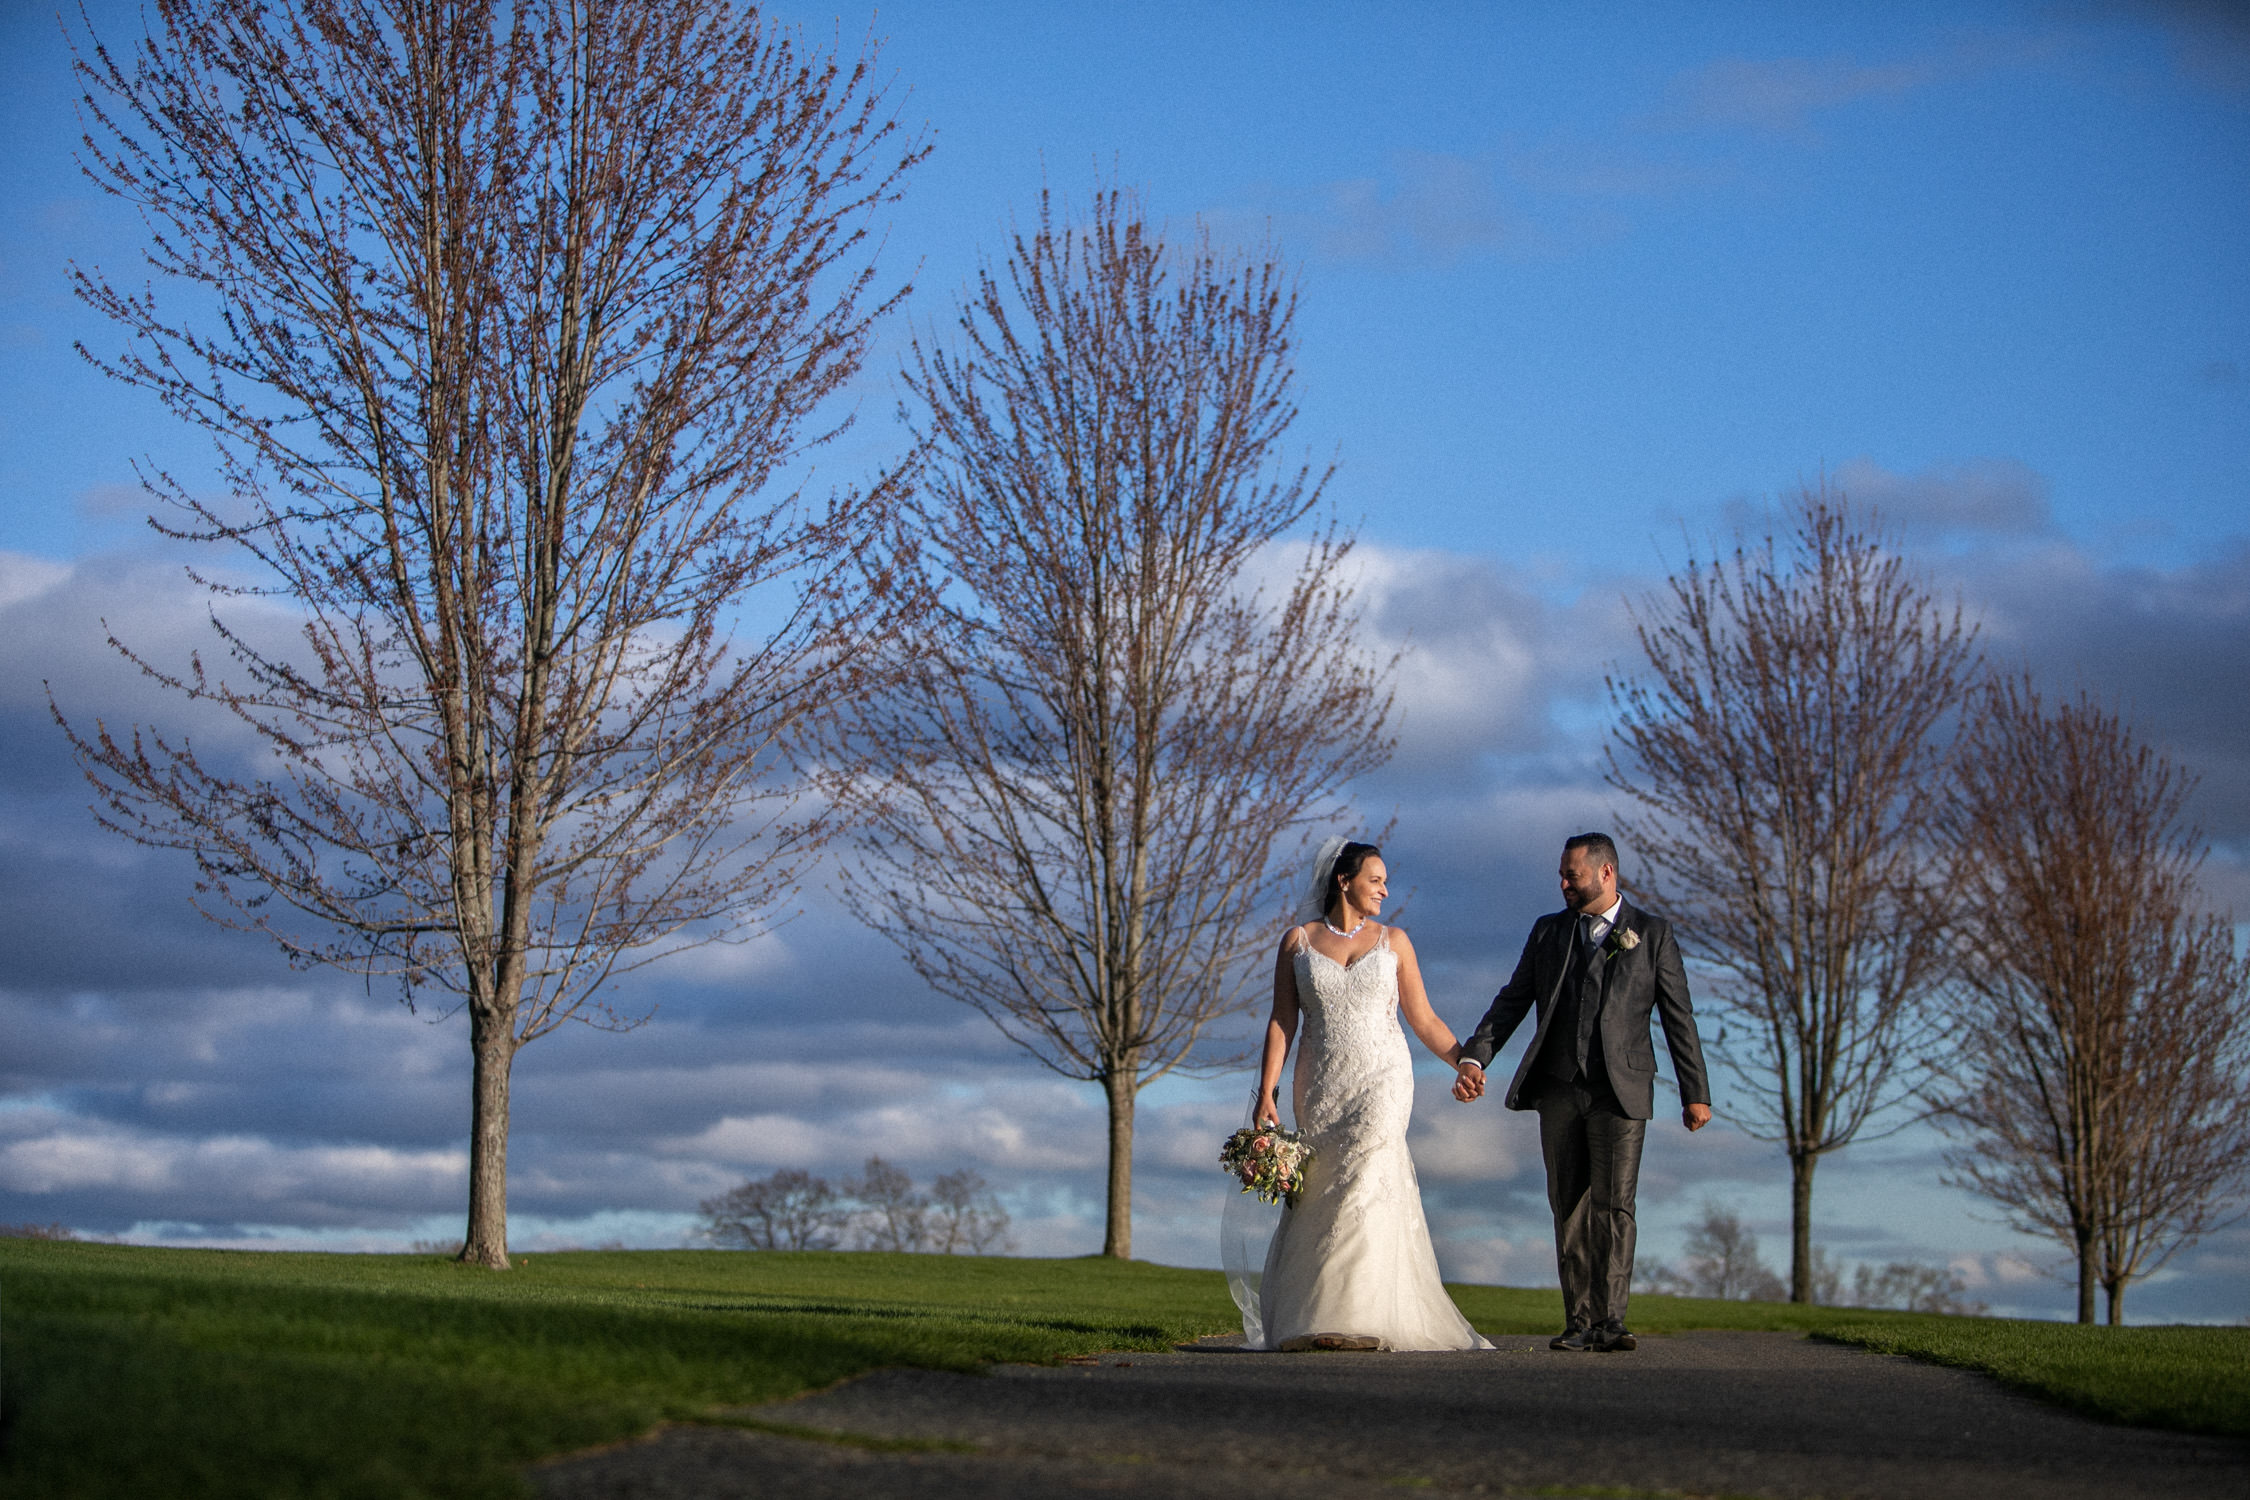 Worcester wedding photographer - HighFields Country Club wedding